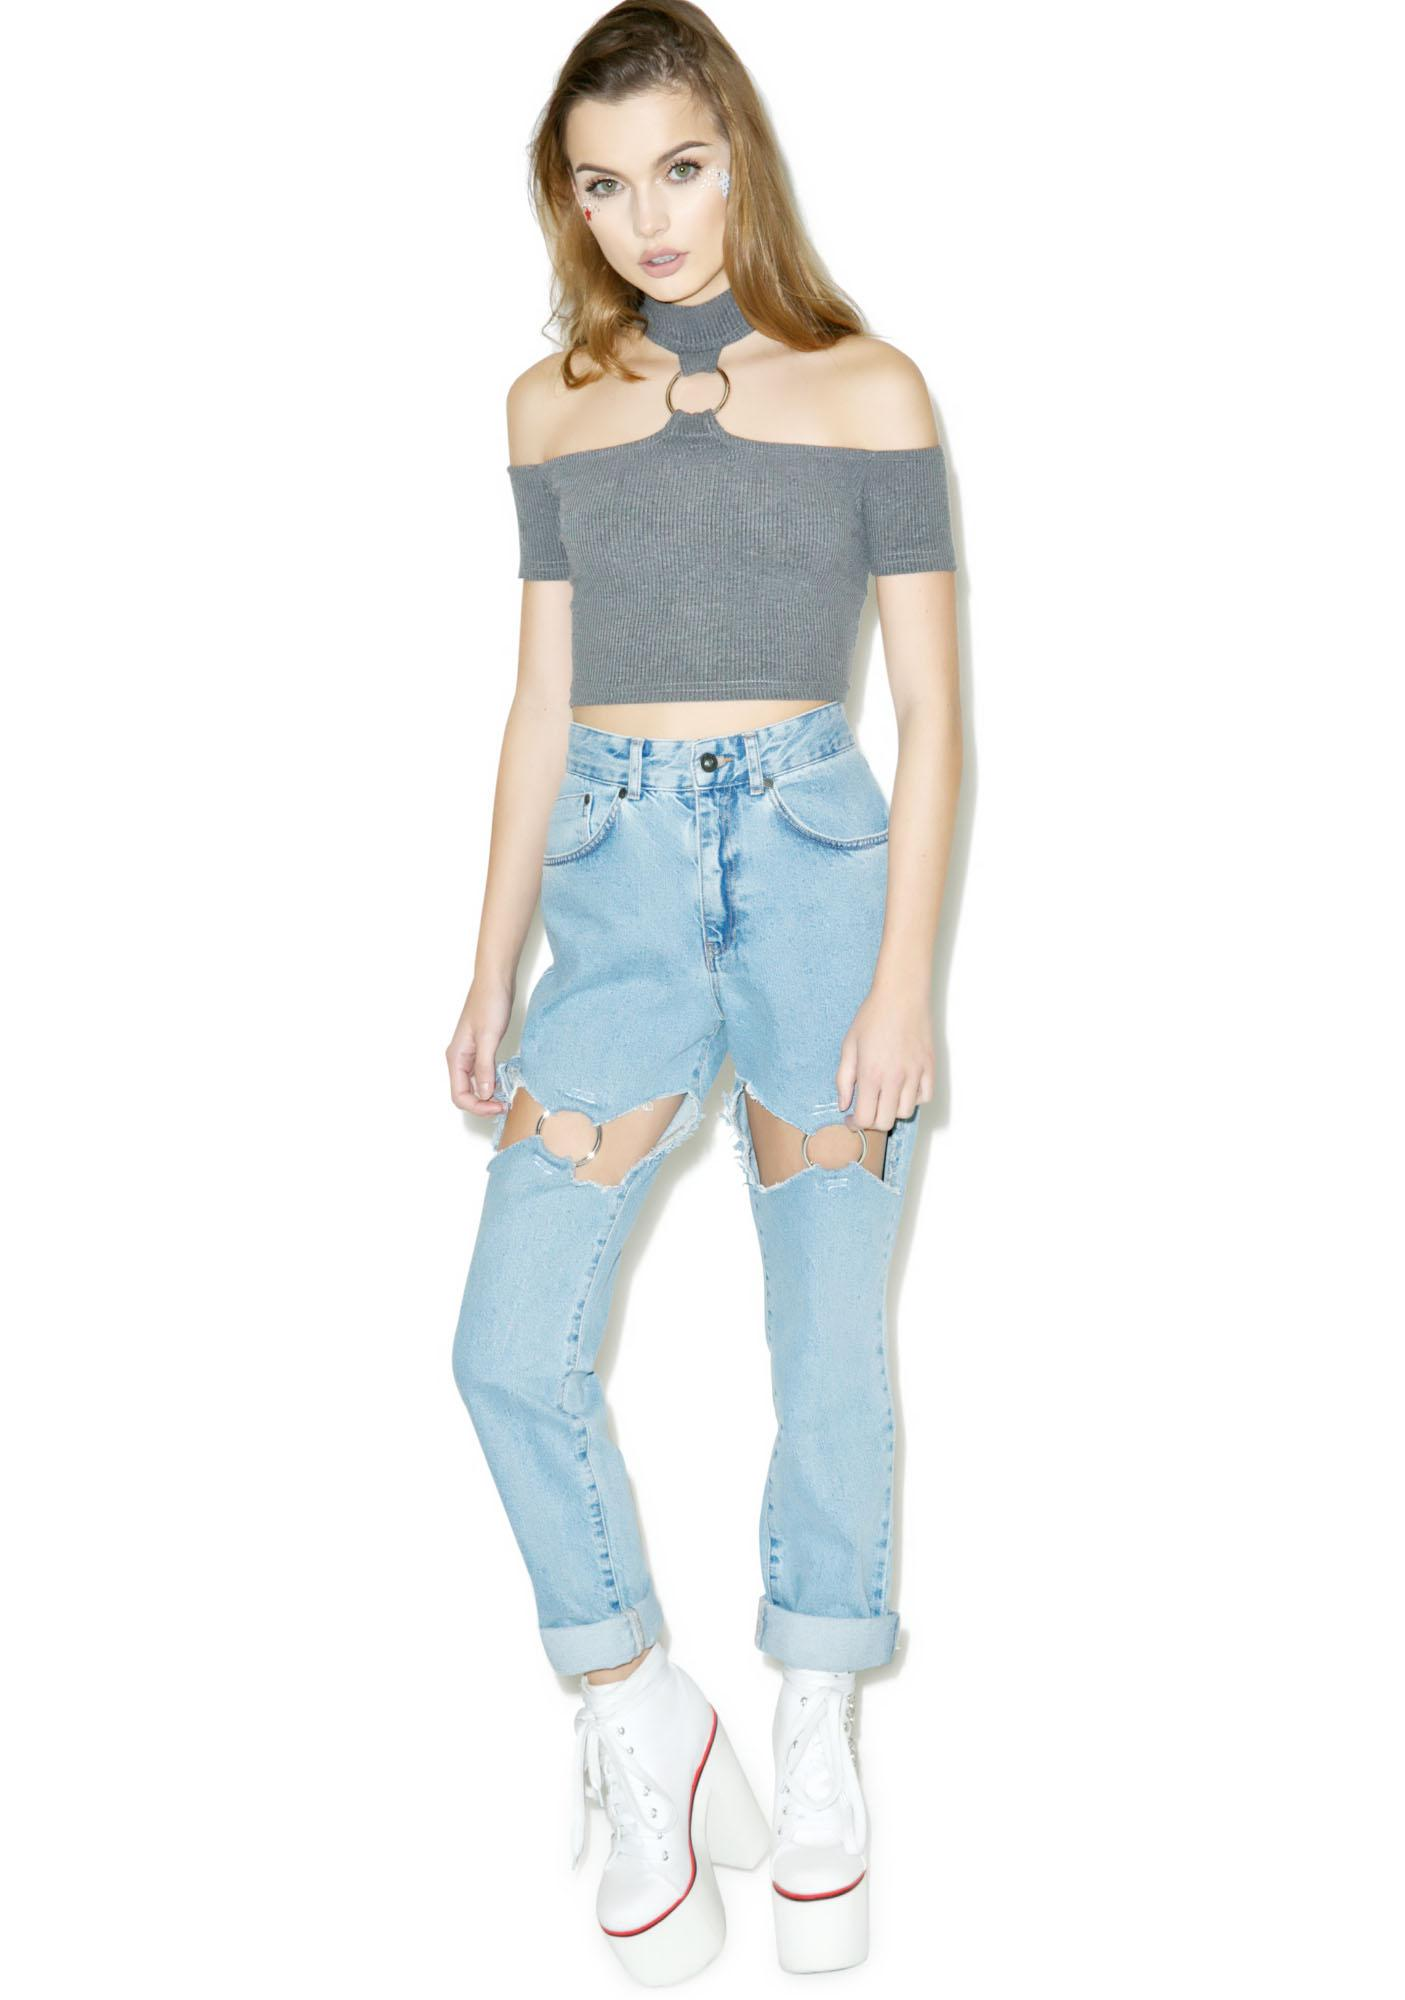 The Ragged Priest Thorn Crop Top